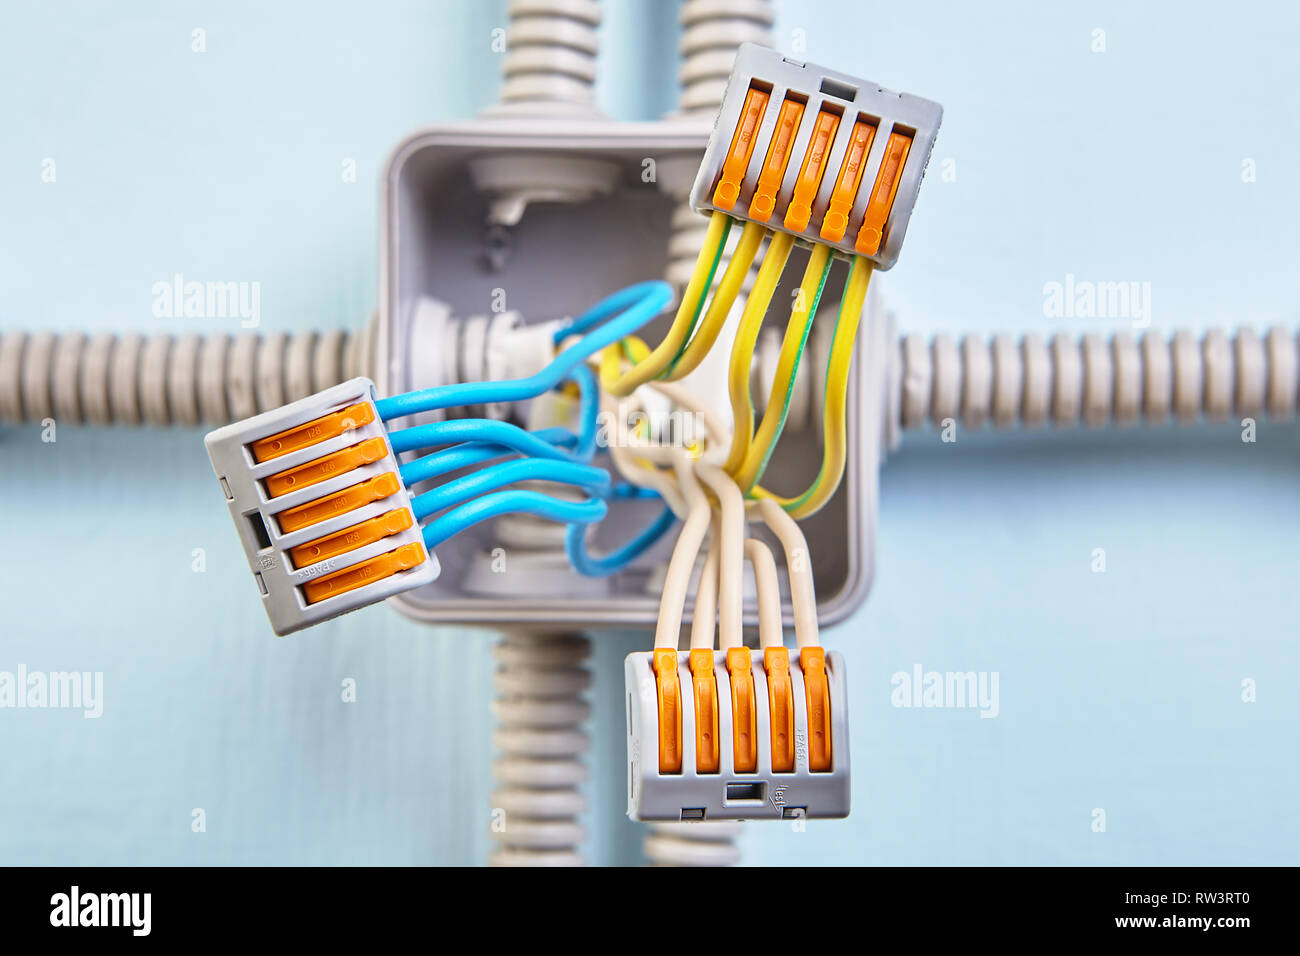 Junction Box Wiring High Resolution Stock Photography And Images Alamy